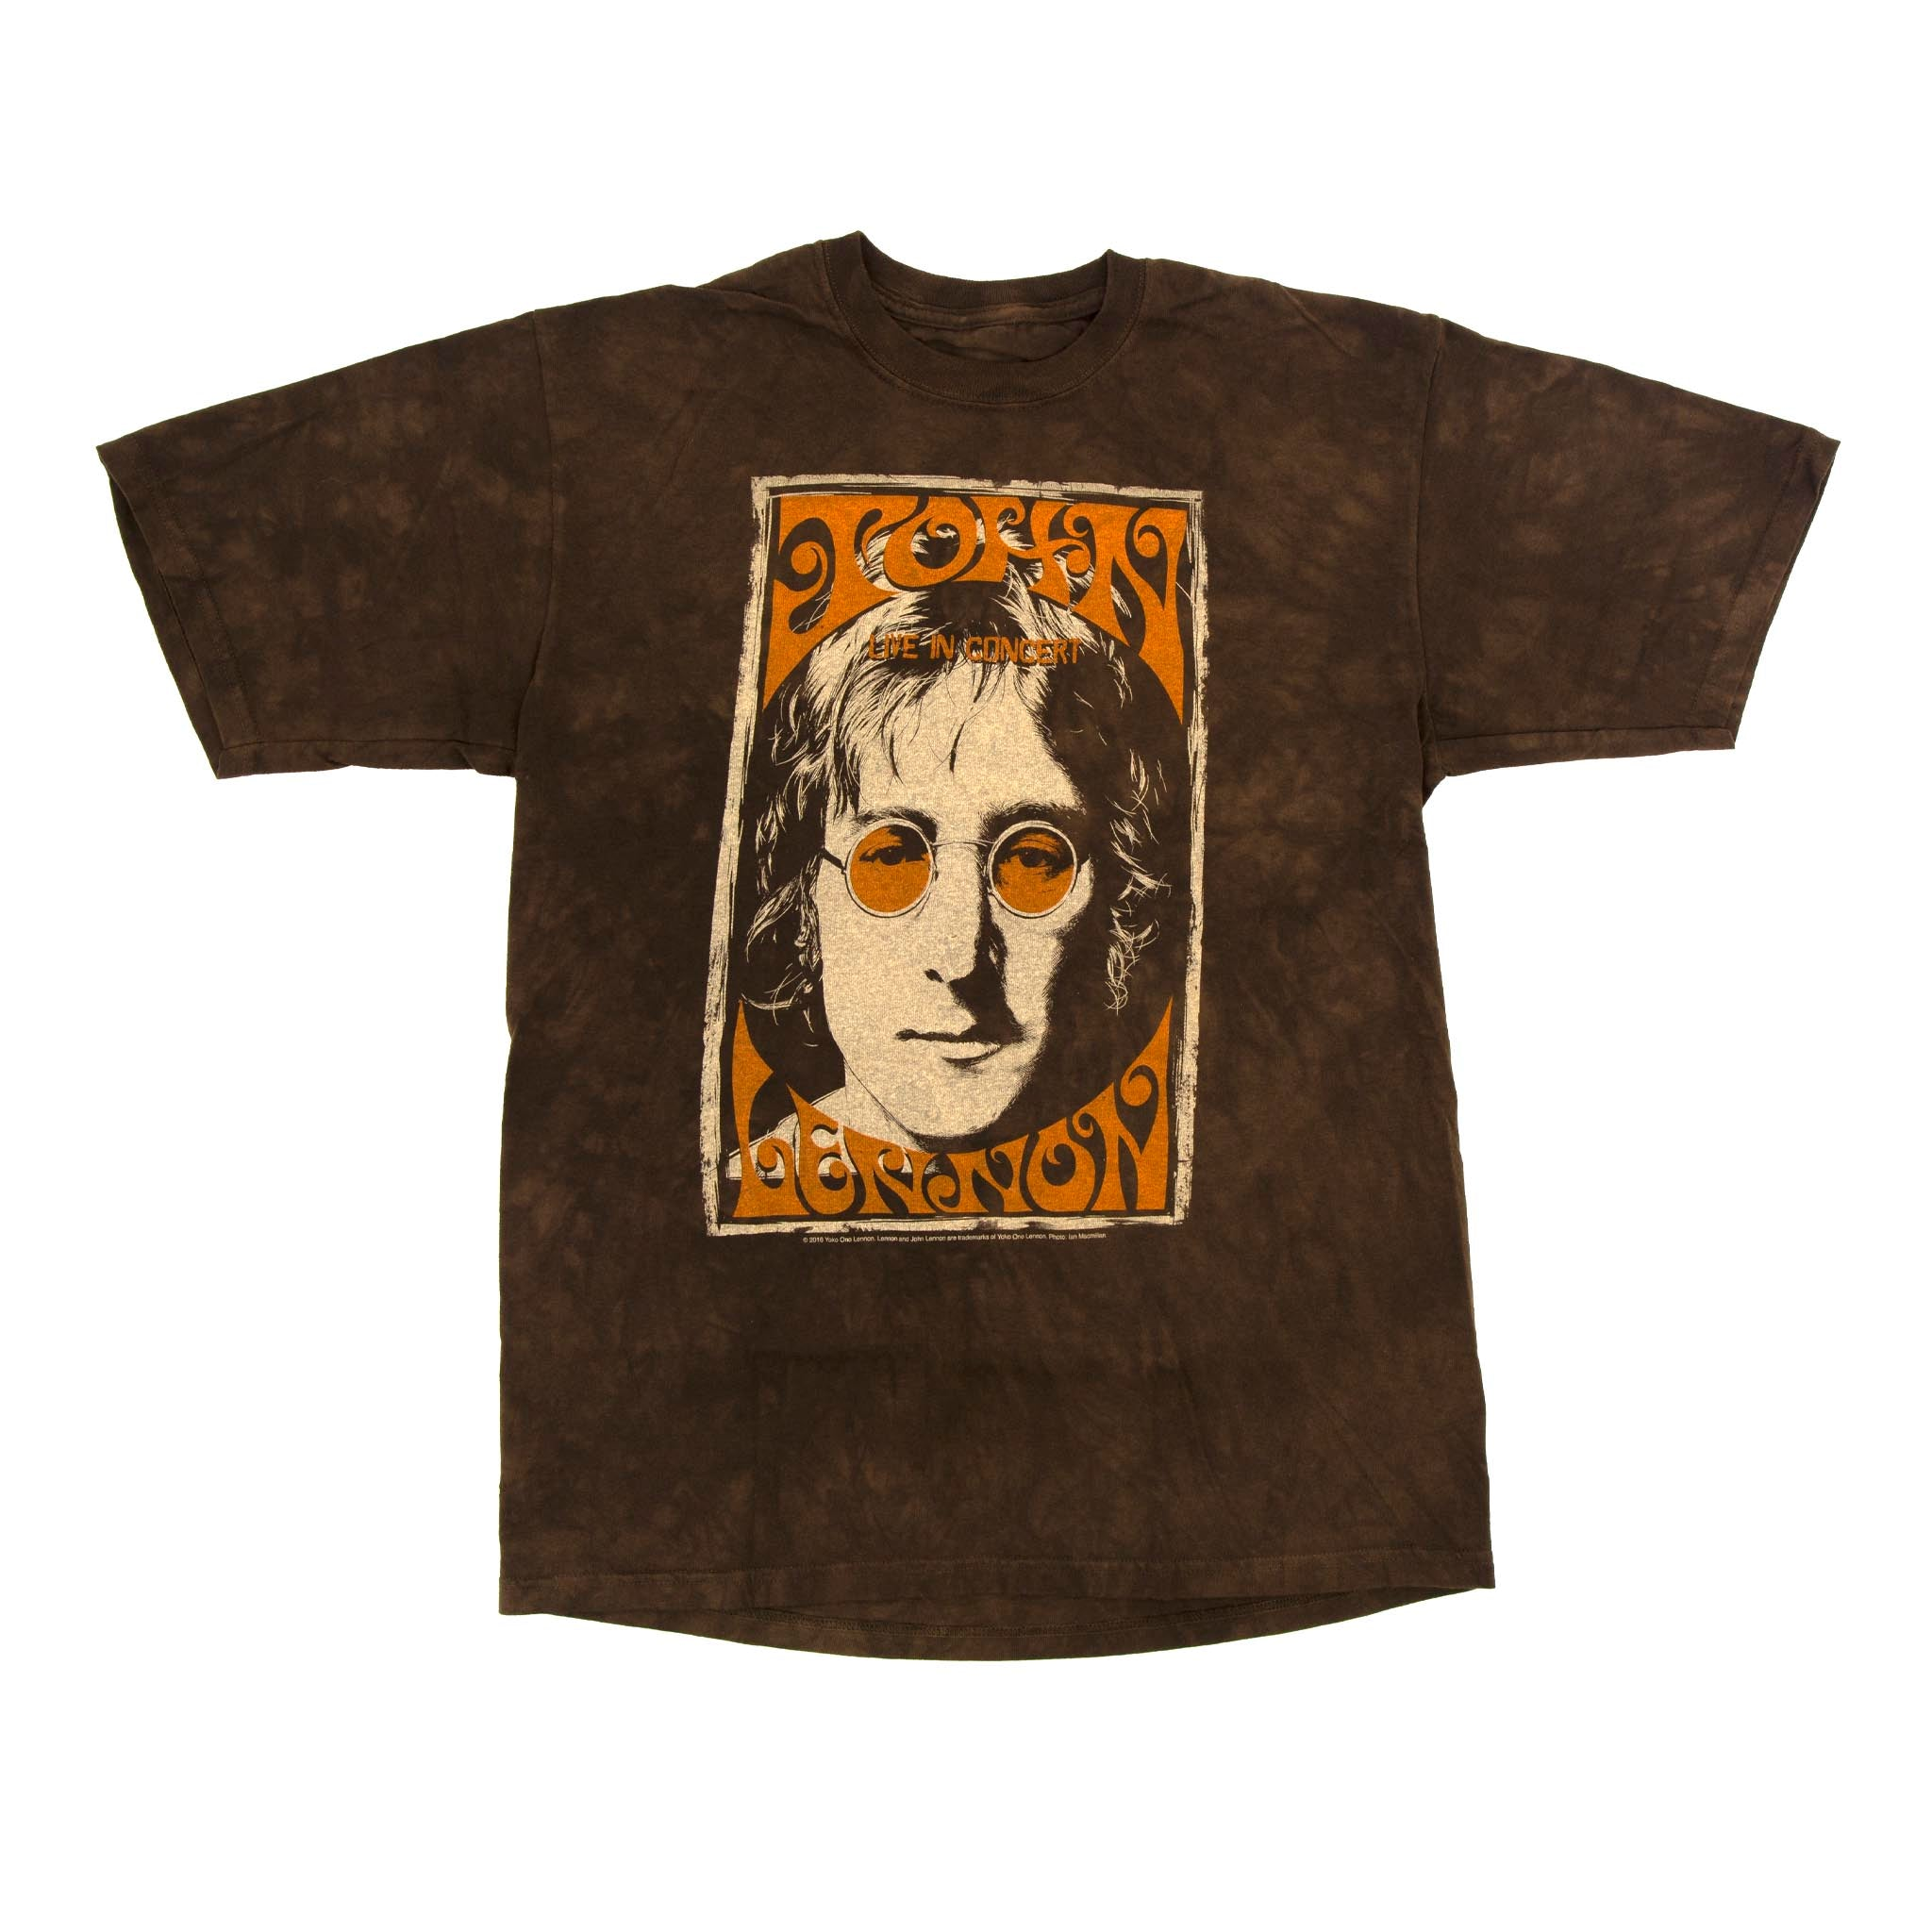 a9ff81eb HippieShop.com: John Lennon Live in NYC Tie Dye T Shirt on Sale for ...